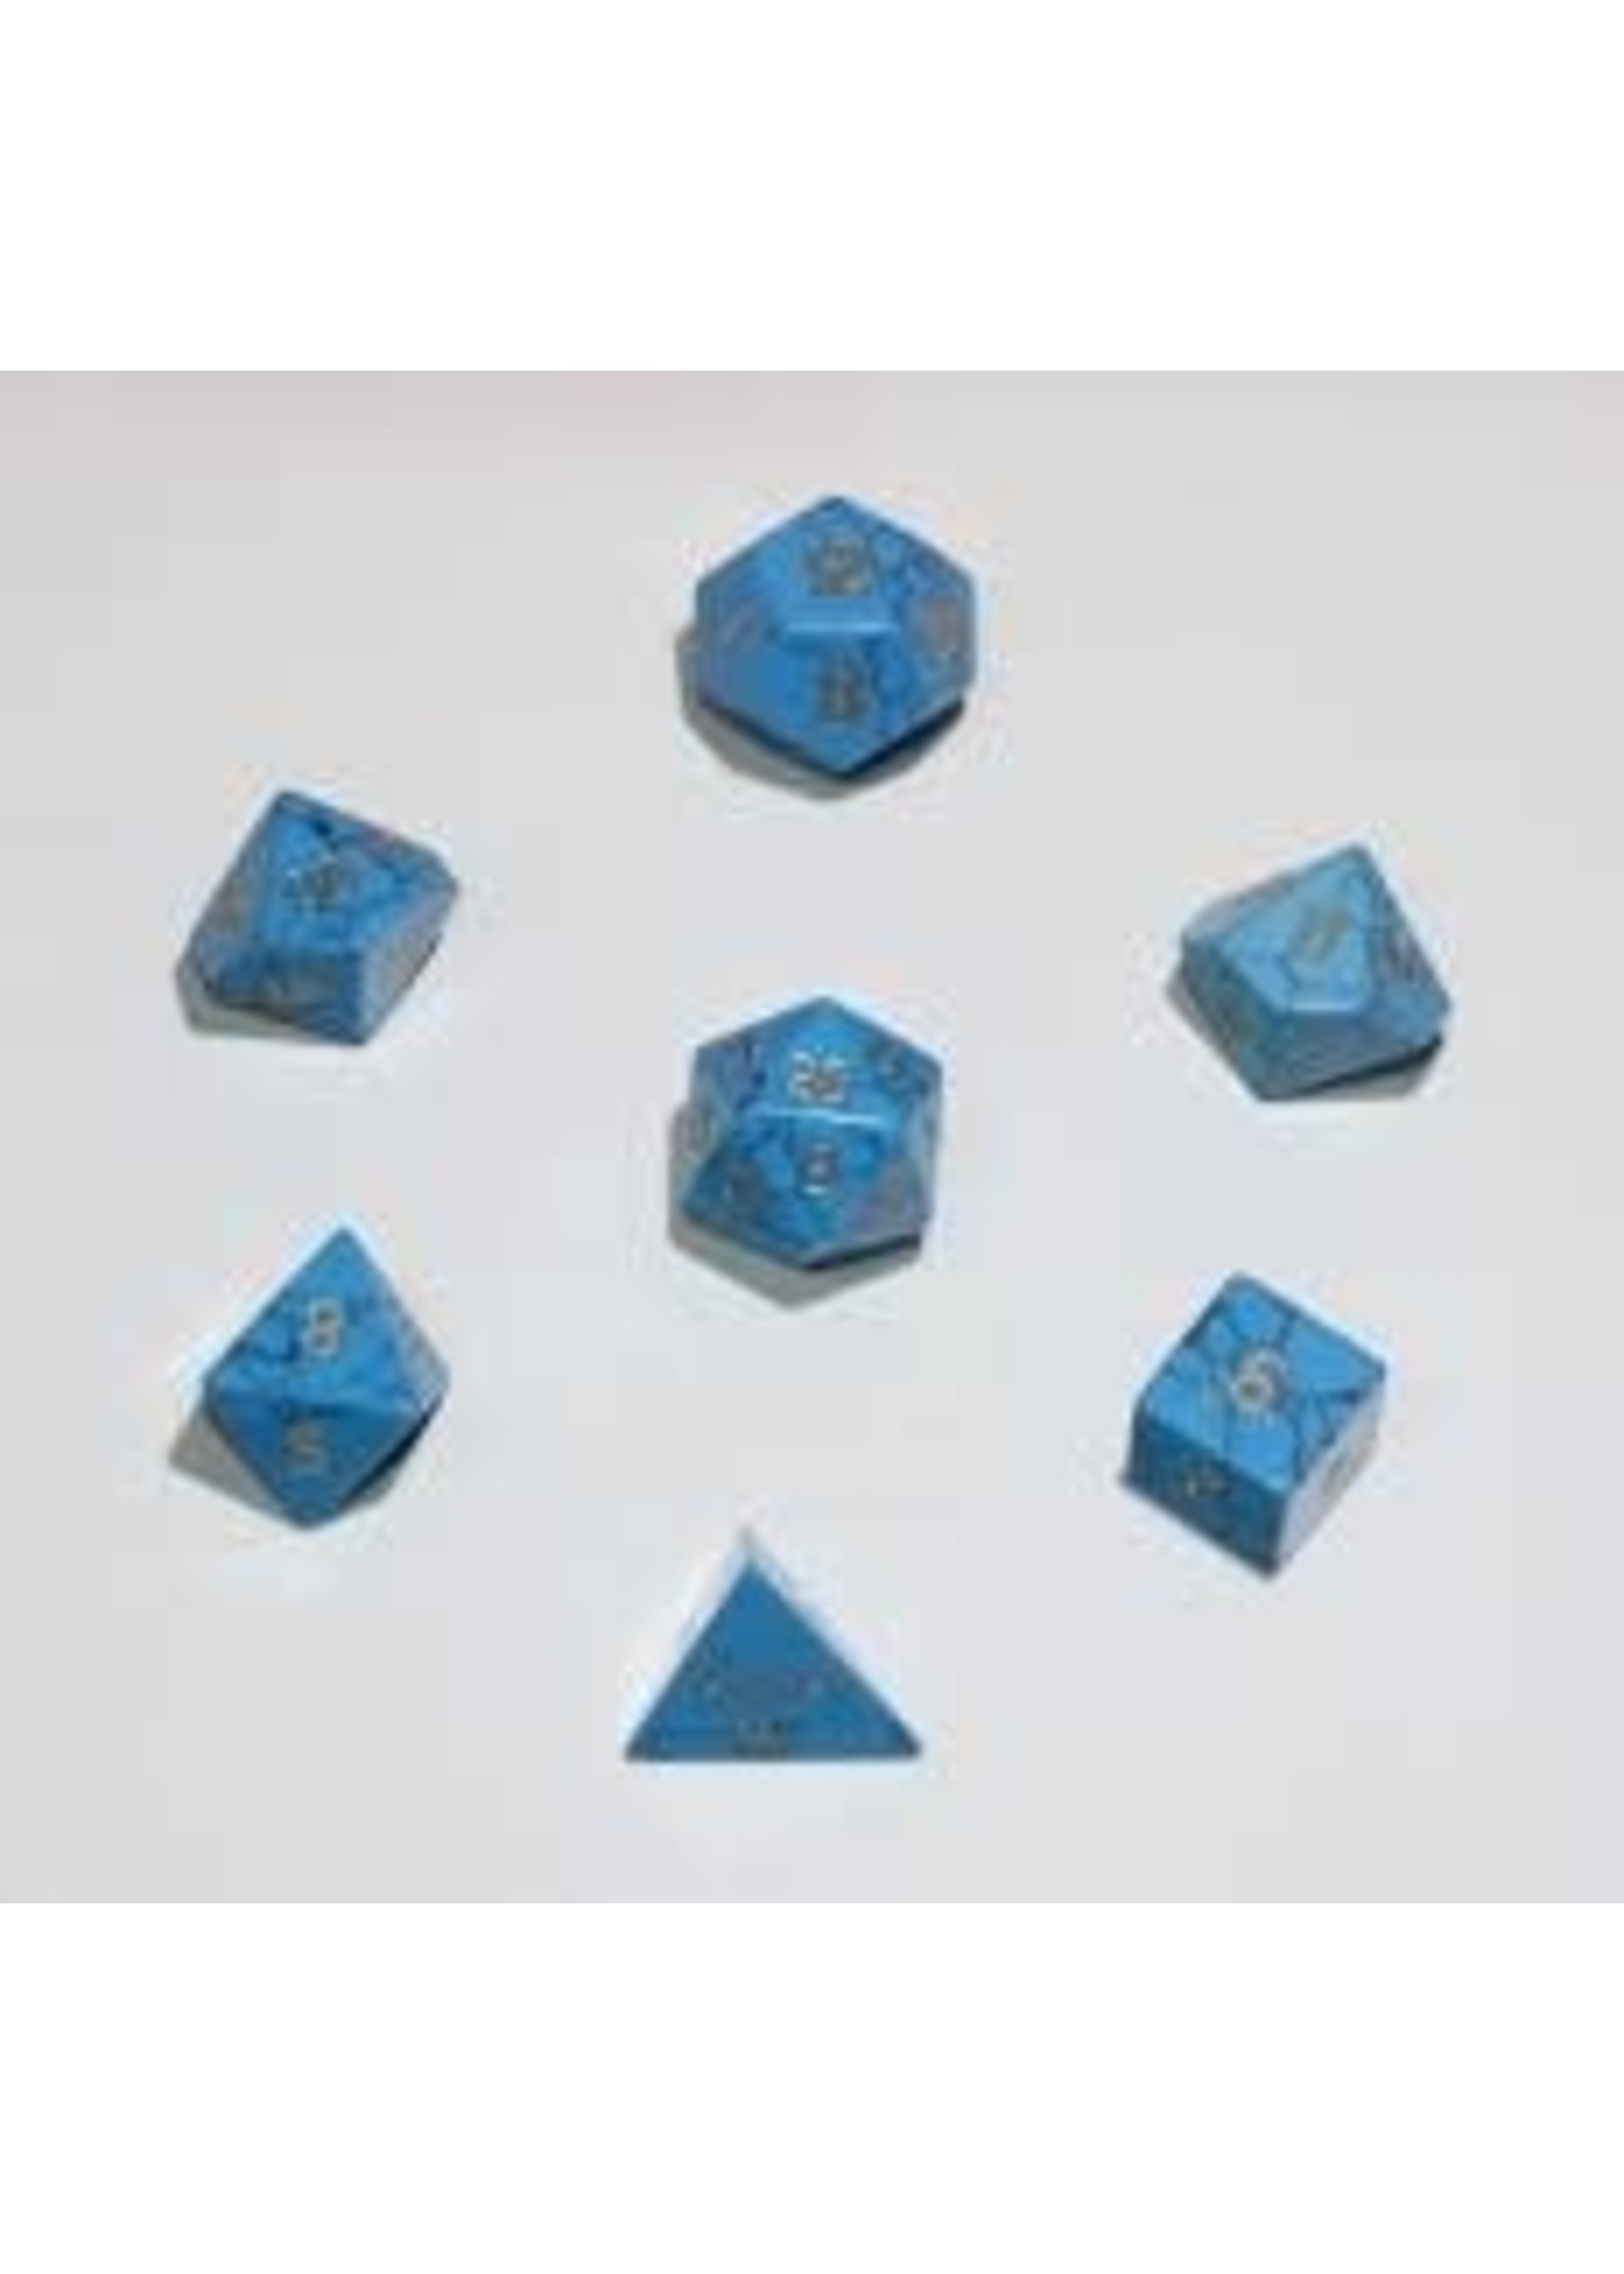 Crystal Caste 16mm Blue Turqoise - large 7 set (gold numbers)